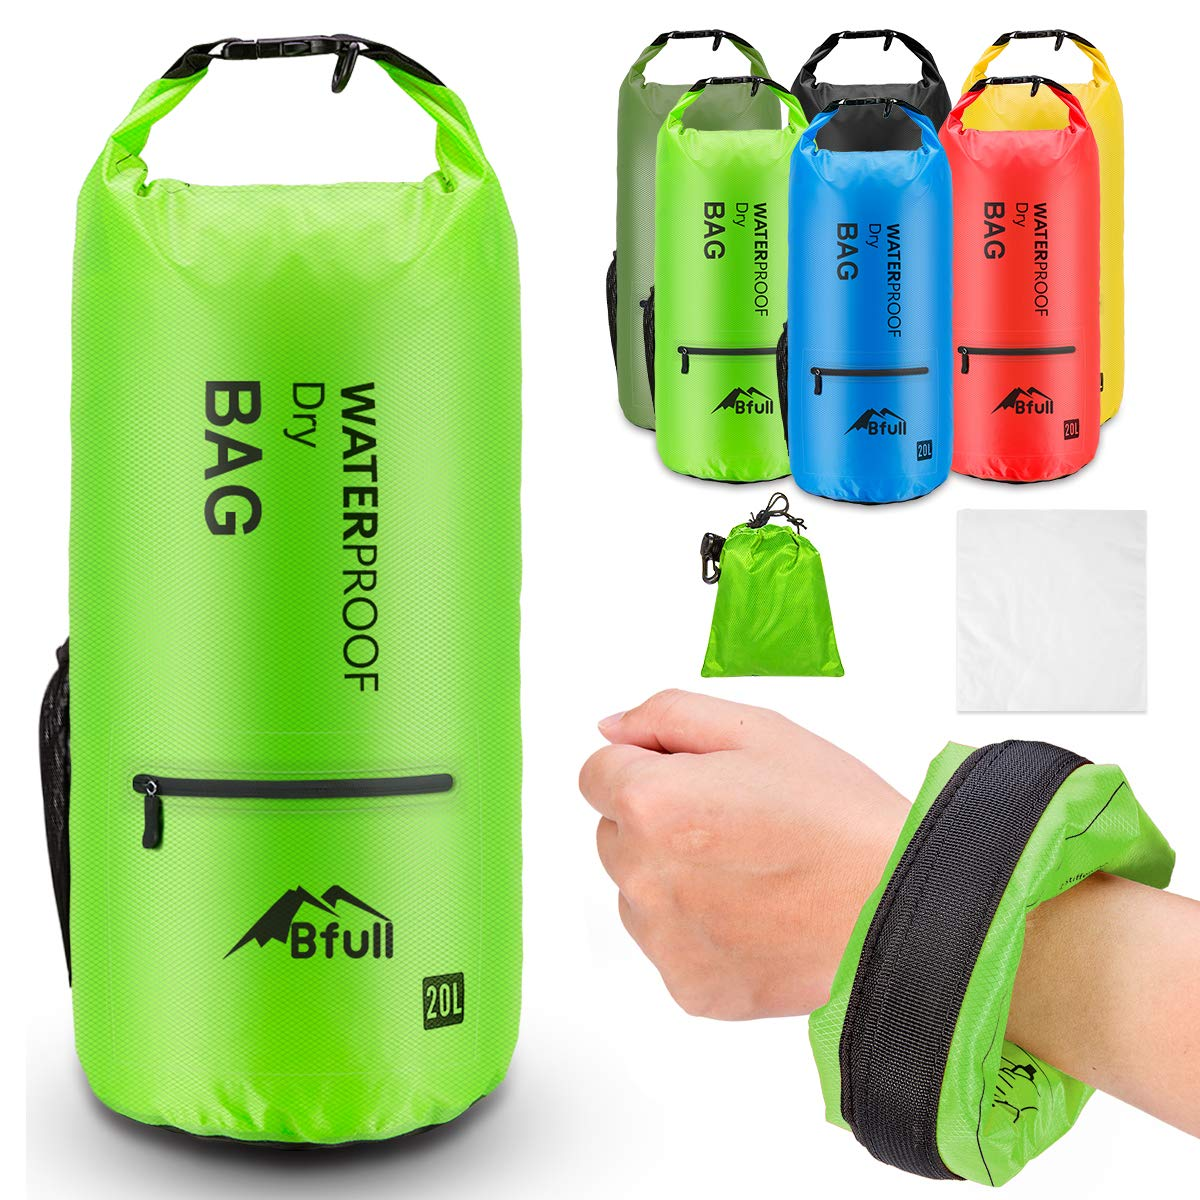 BFULL Floating Waterproof Dry Bag Backpack 5L/10L/20L/30L/40L Lightweight Marine Waterproof Bag Roll Top Sack Keeps Gear Dry for Beach, Swimming, Boating, Kayaking, Surfing and Outdoor Activities